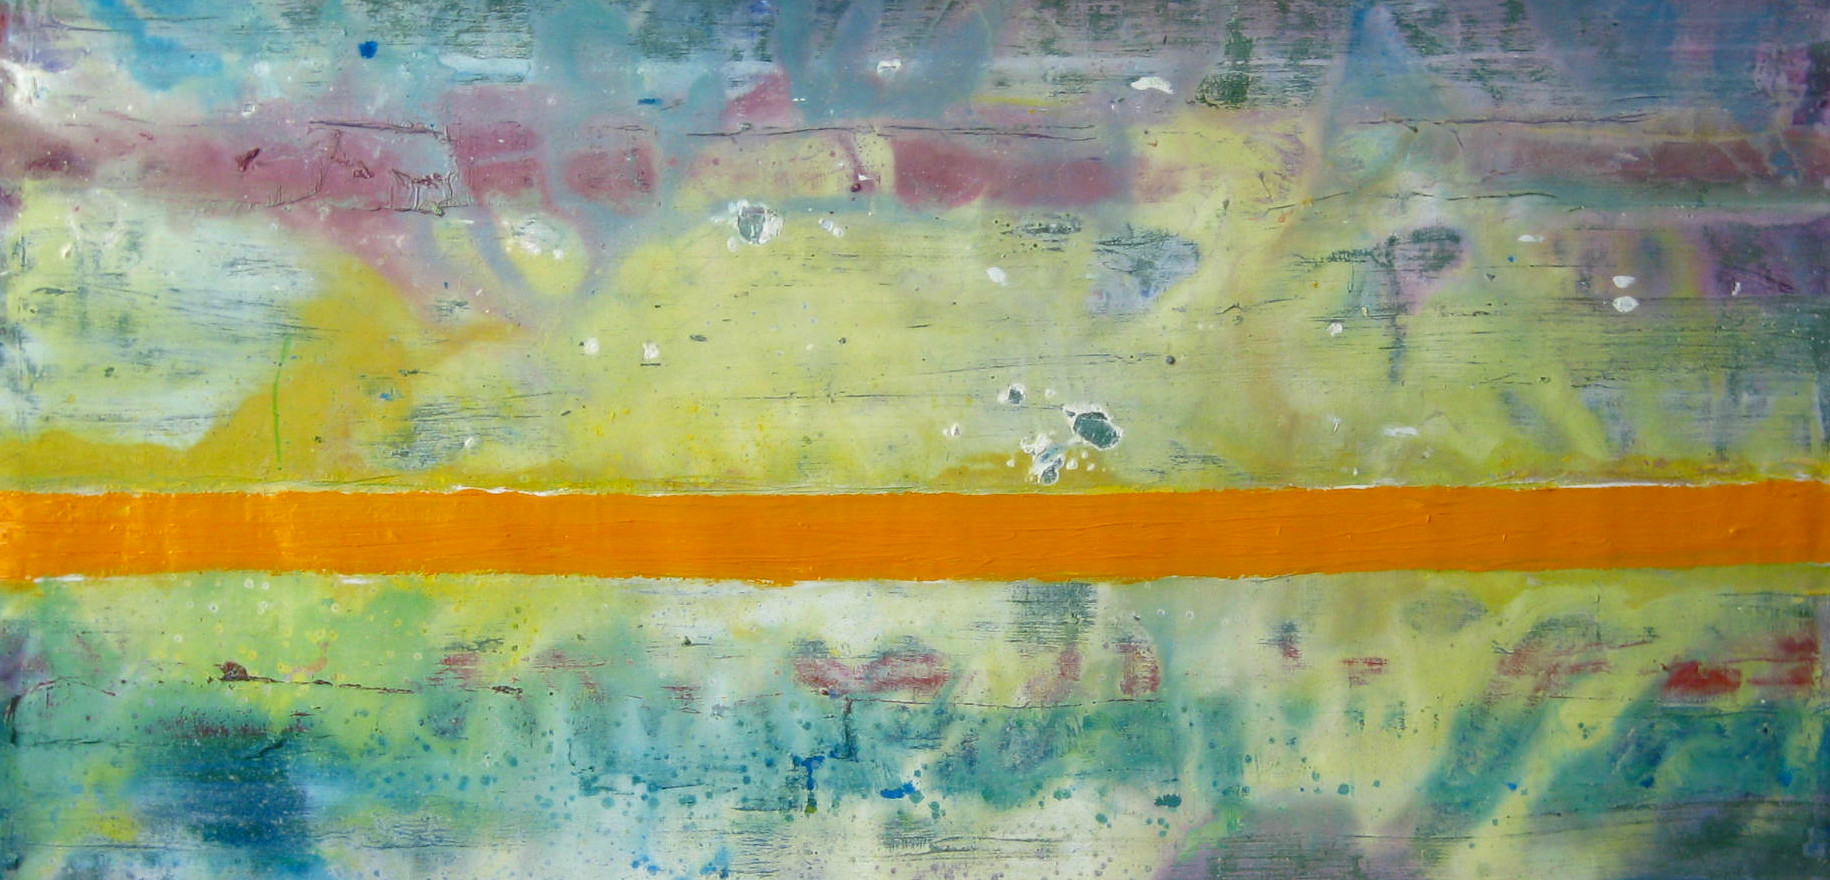 """Untitled"", 2012, oil on canvas, 130 x 130 cm."